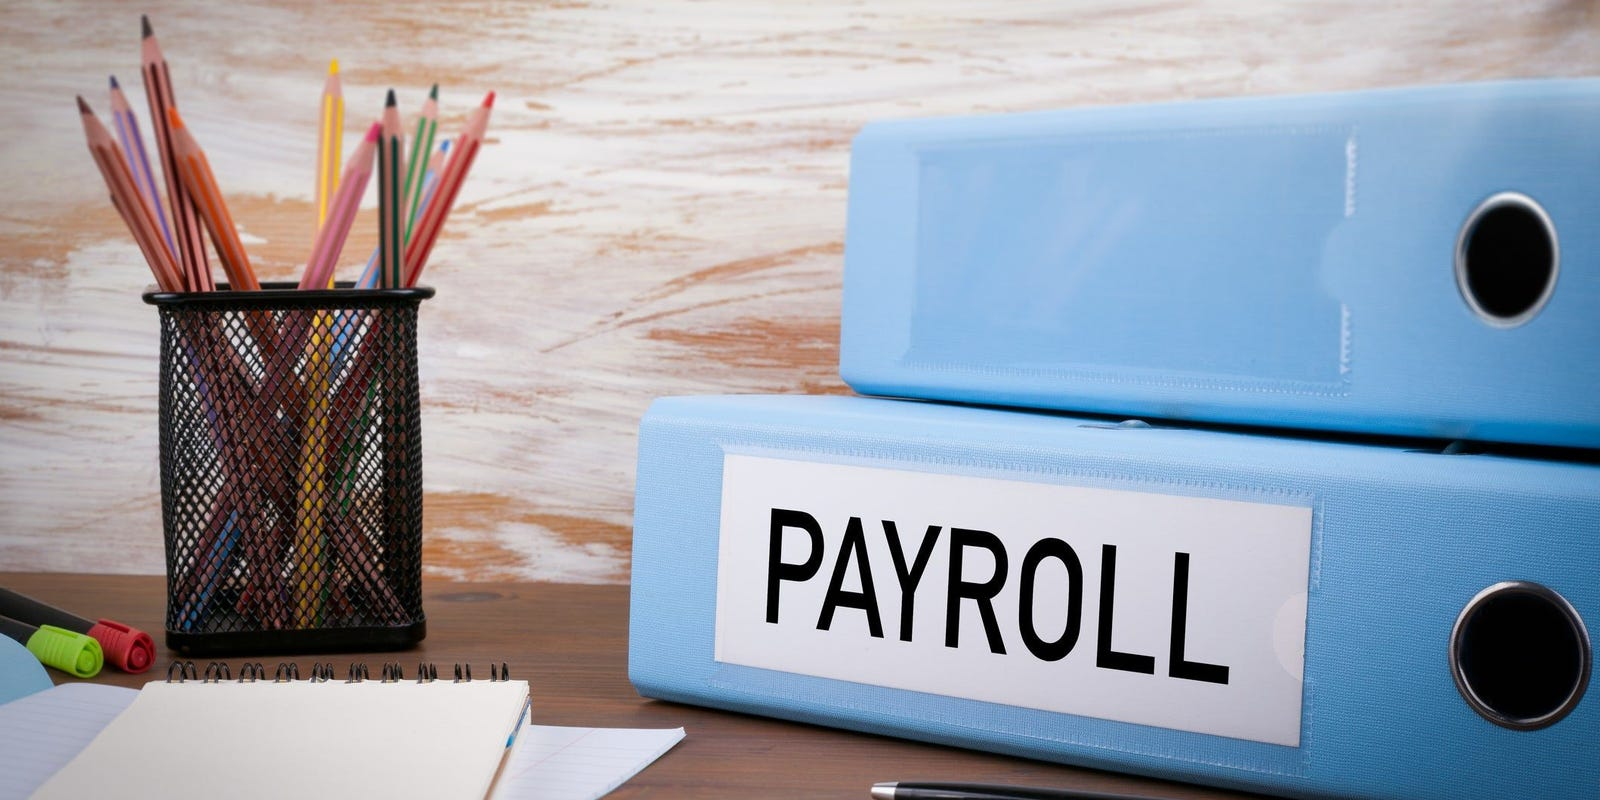 Payroll tax break would create headaches for workers and employers